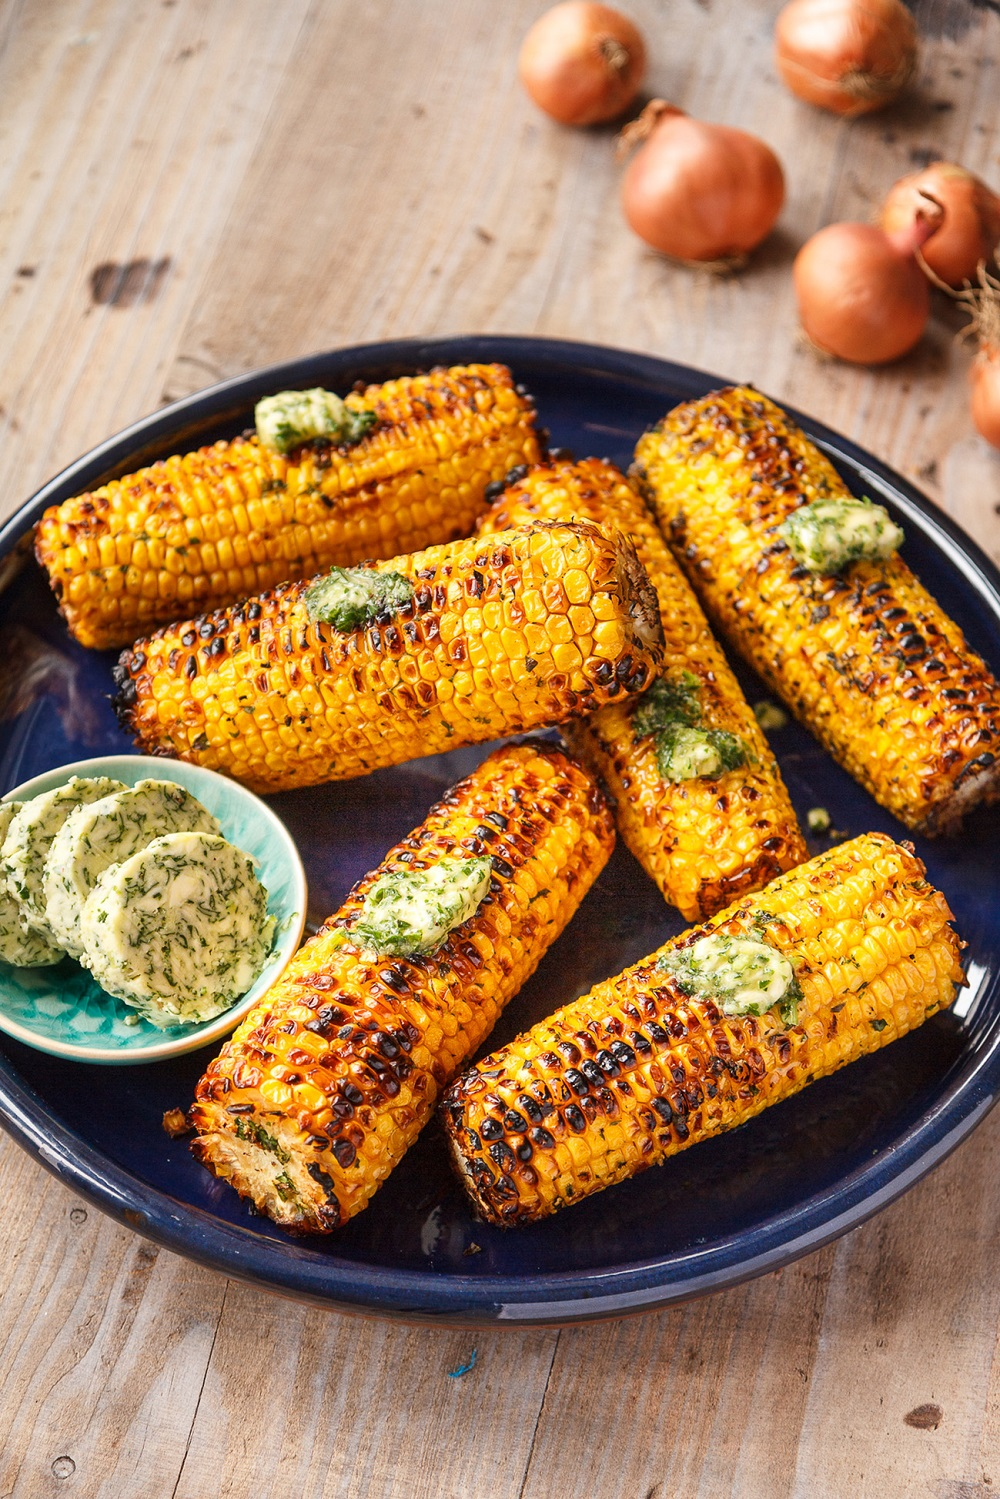 Barbecued Corn On The Cob With Shallot Herb Butter